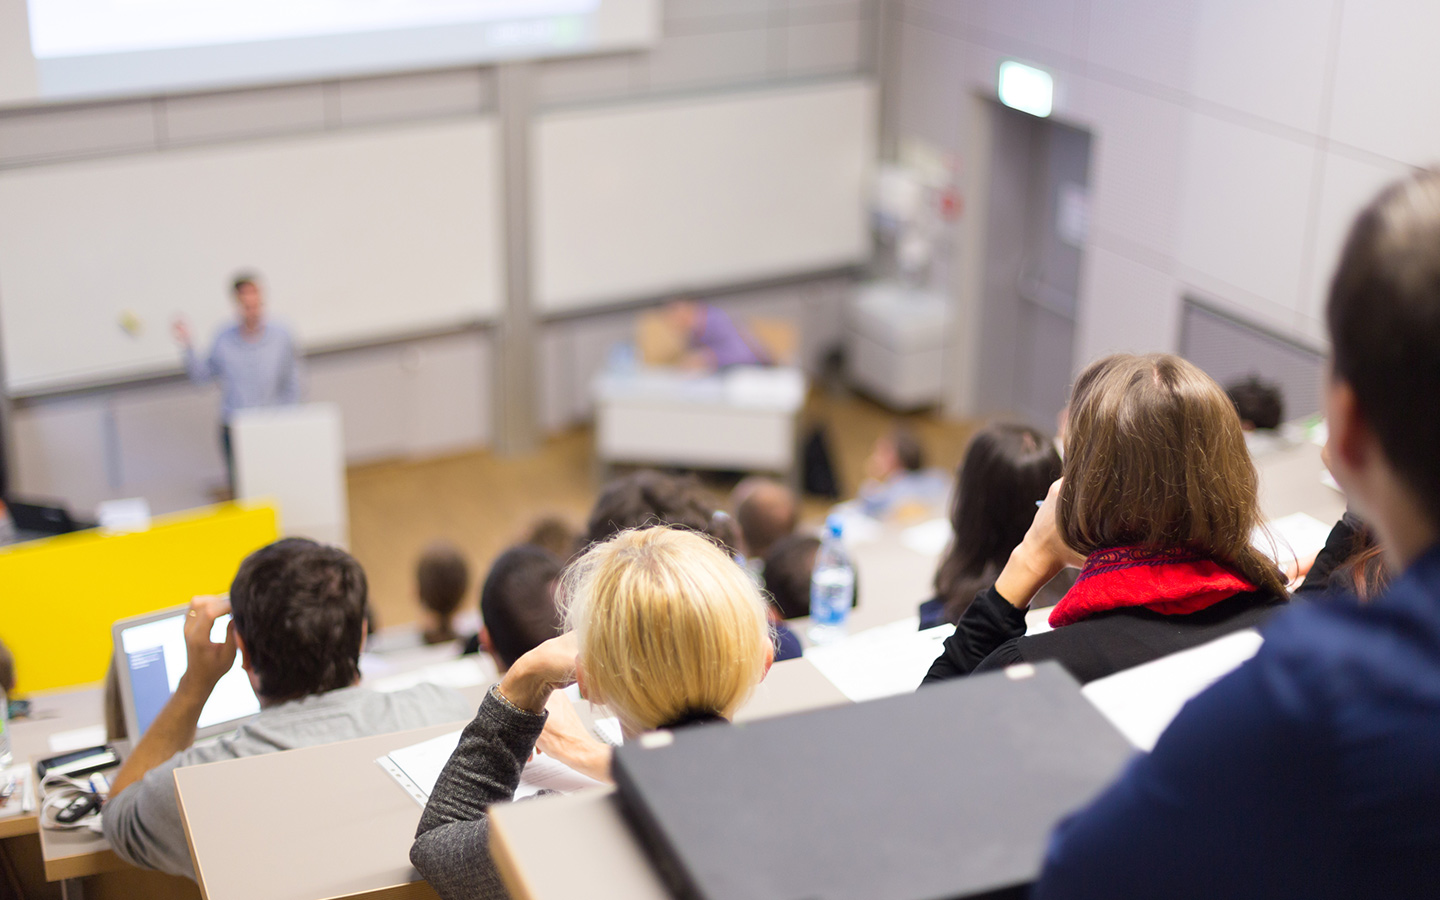 Students in a university classroom